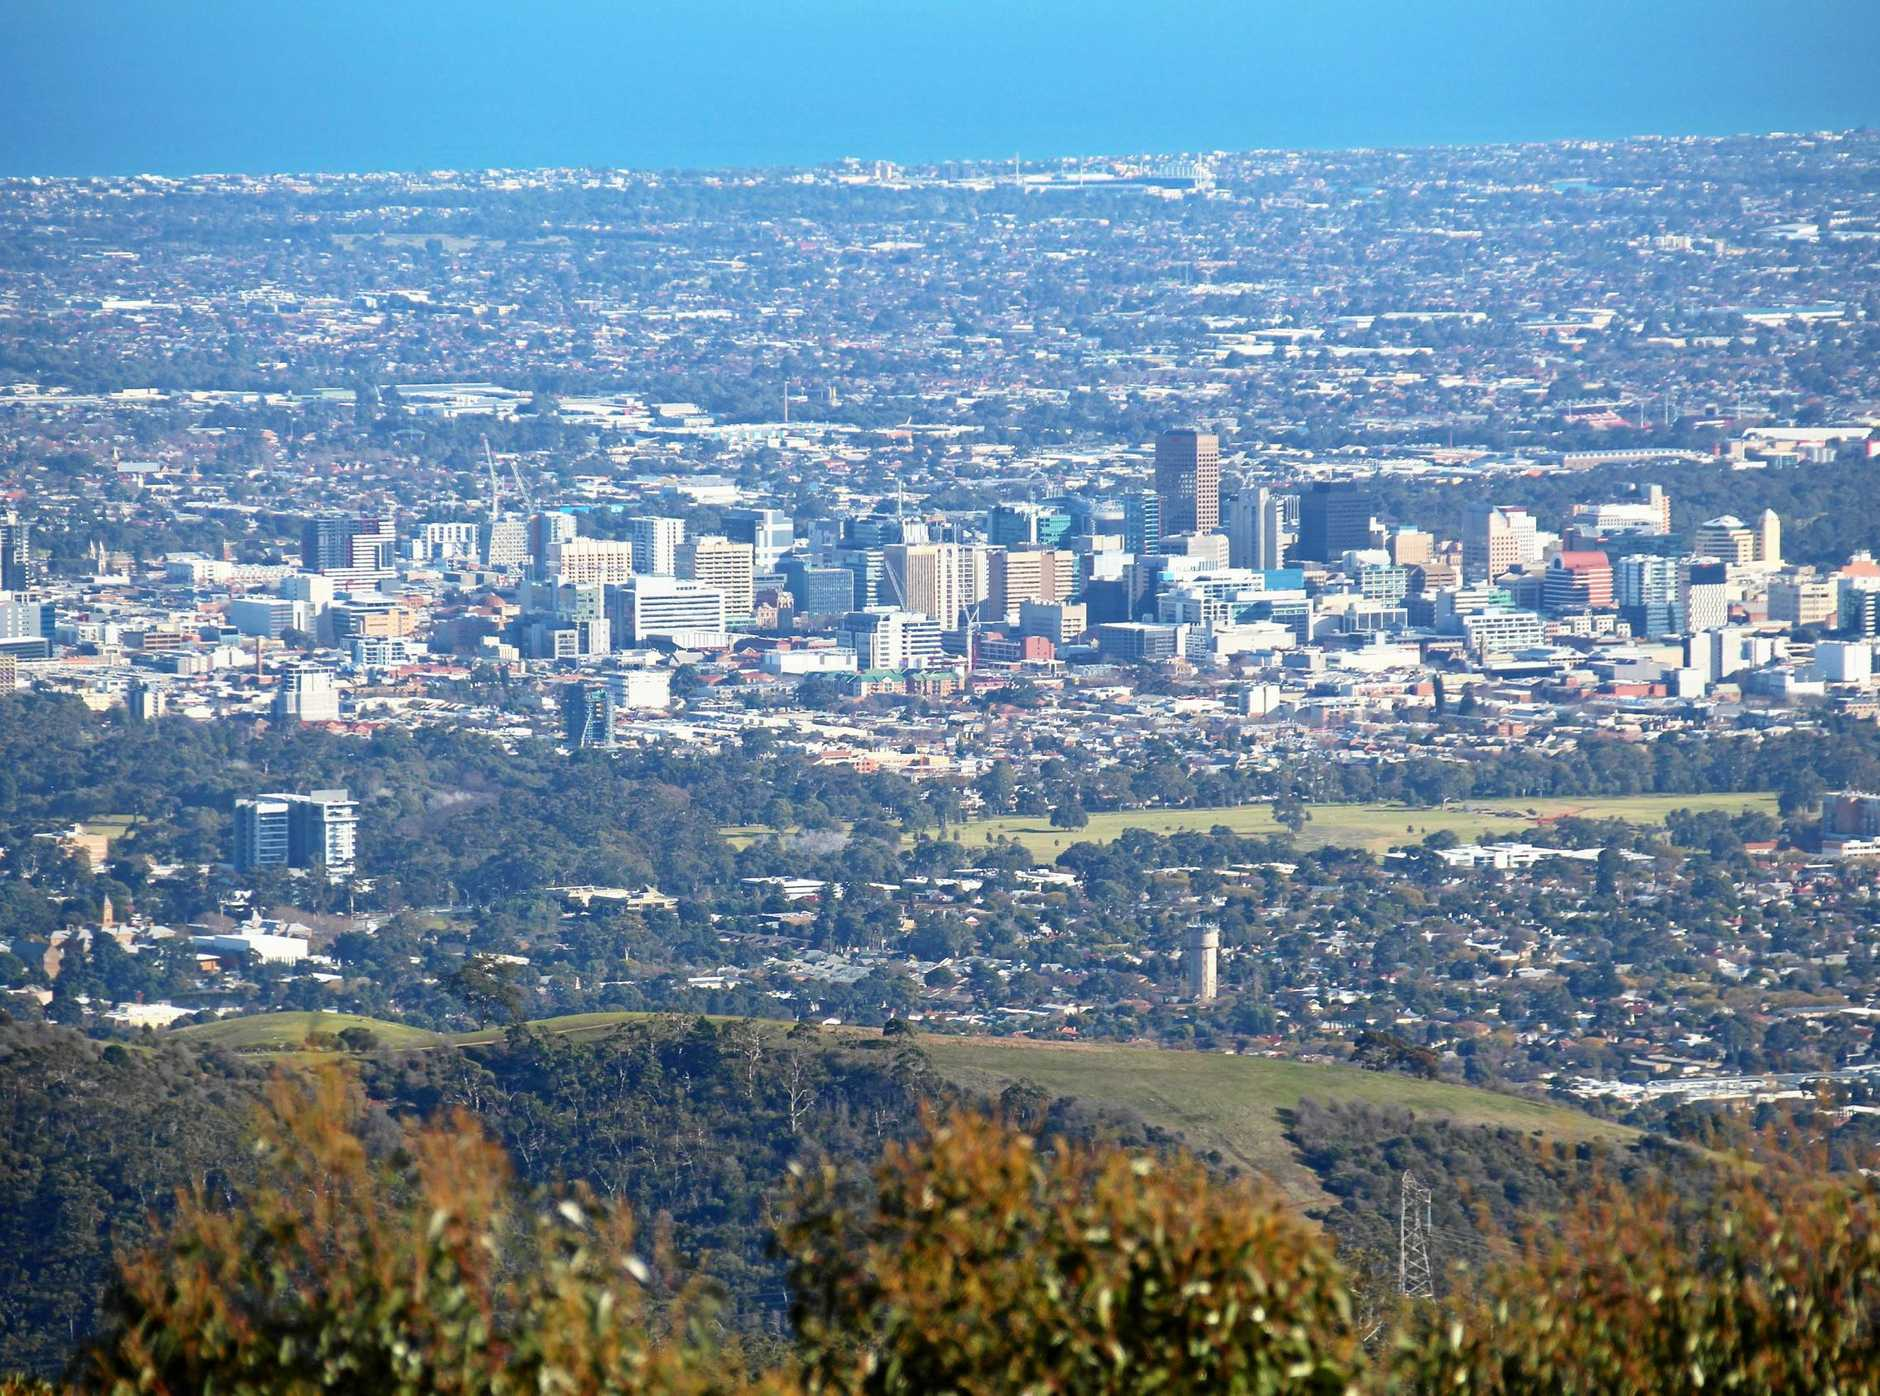 The view of the Adelaide skyline from Mt Lofty Summit, Adelaide Hills.